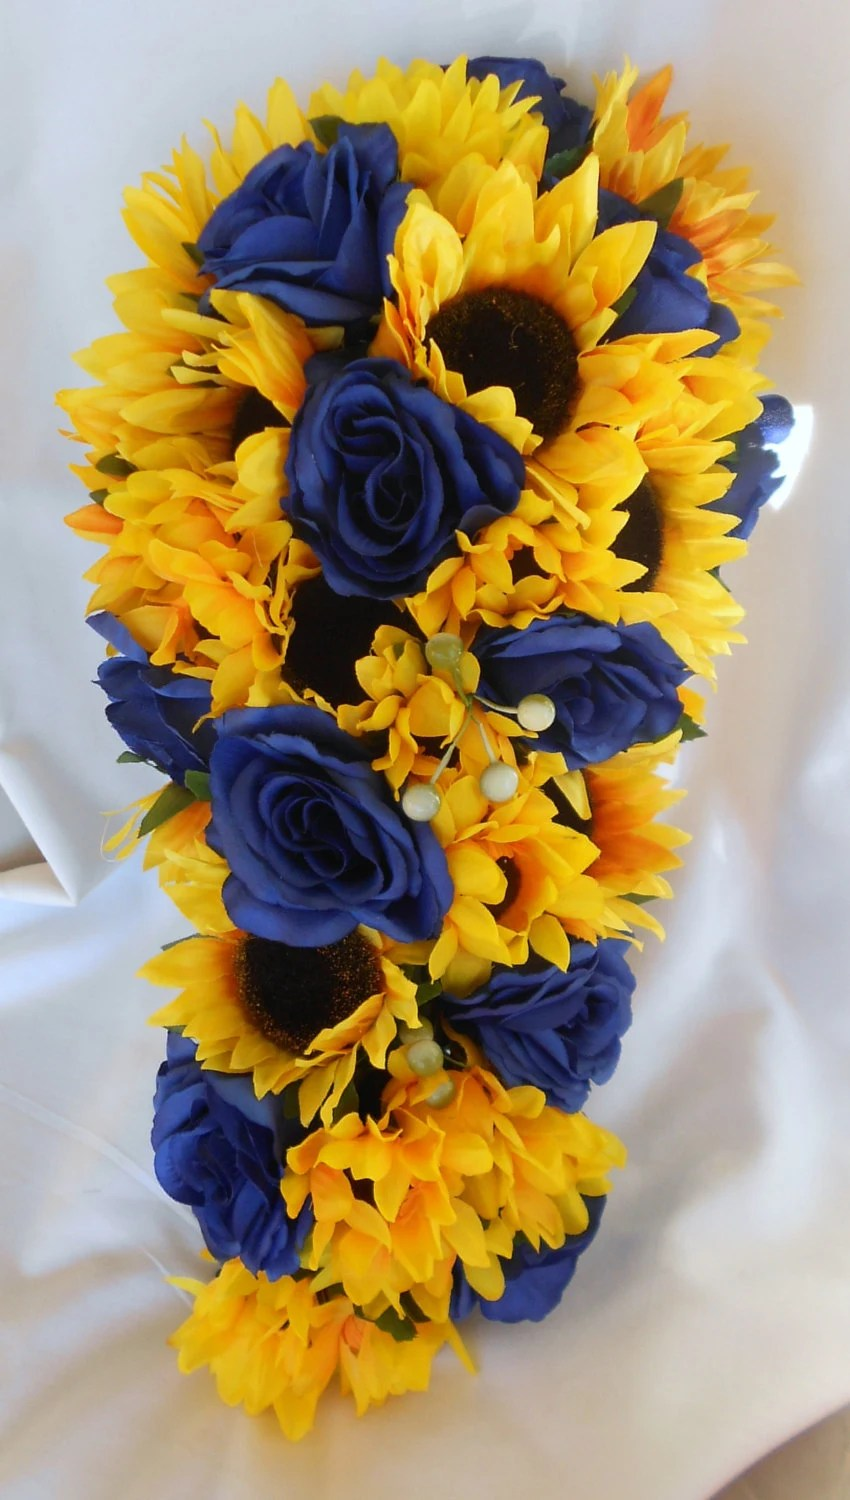 Wedding Tumblr Bouquet Sunflower And Rose